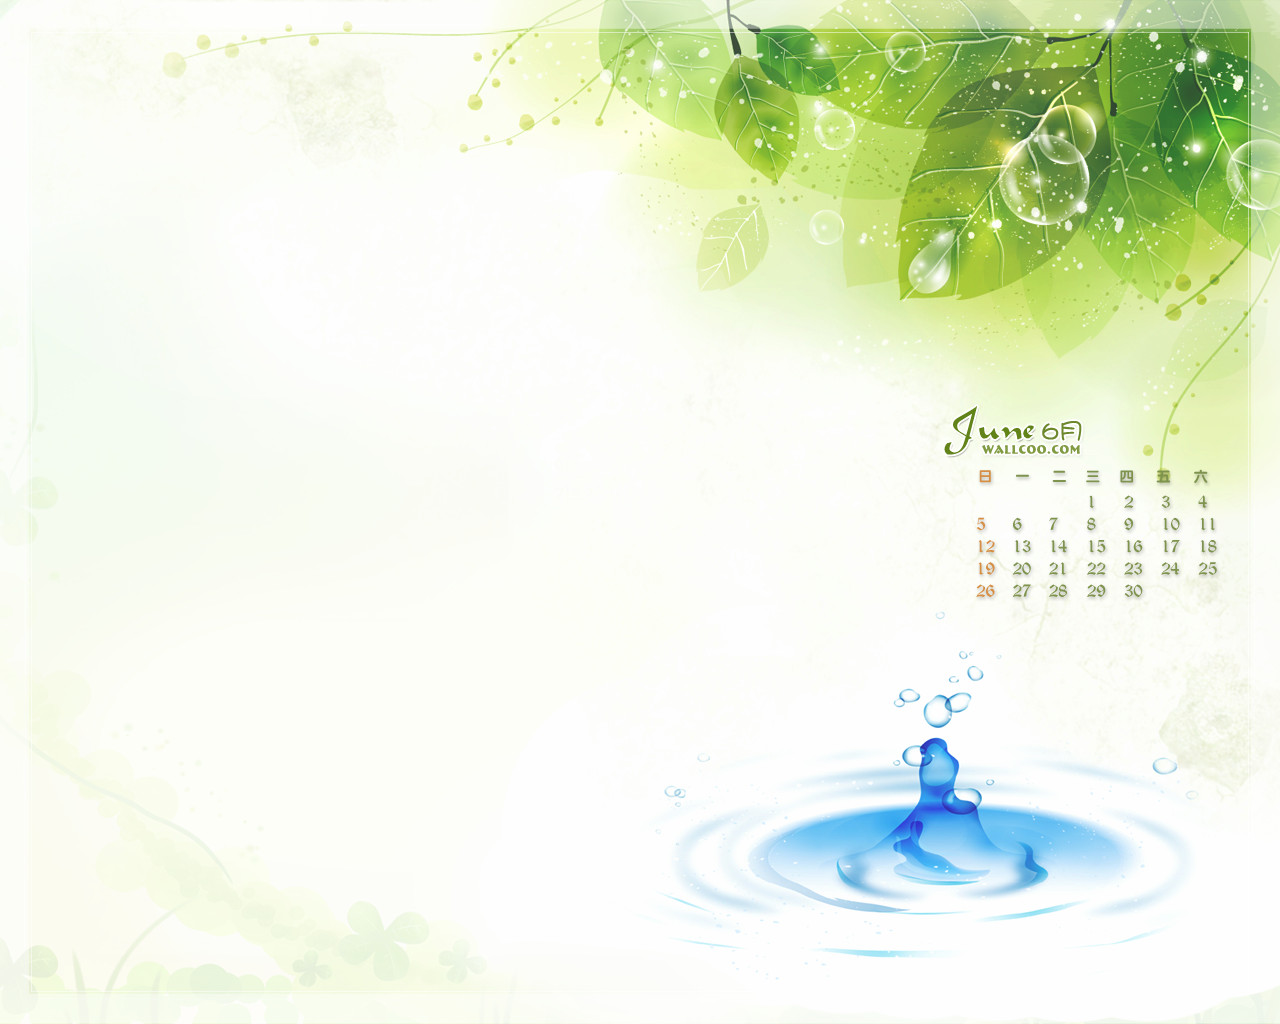 In January Calendar Wallpaper 29682